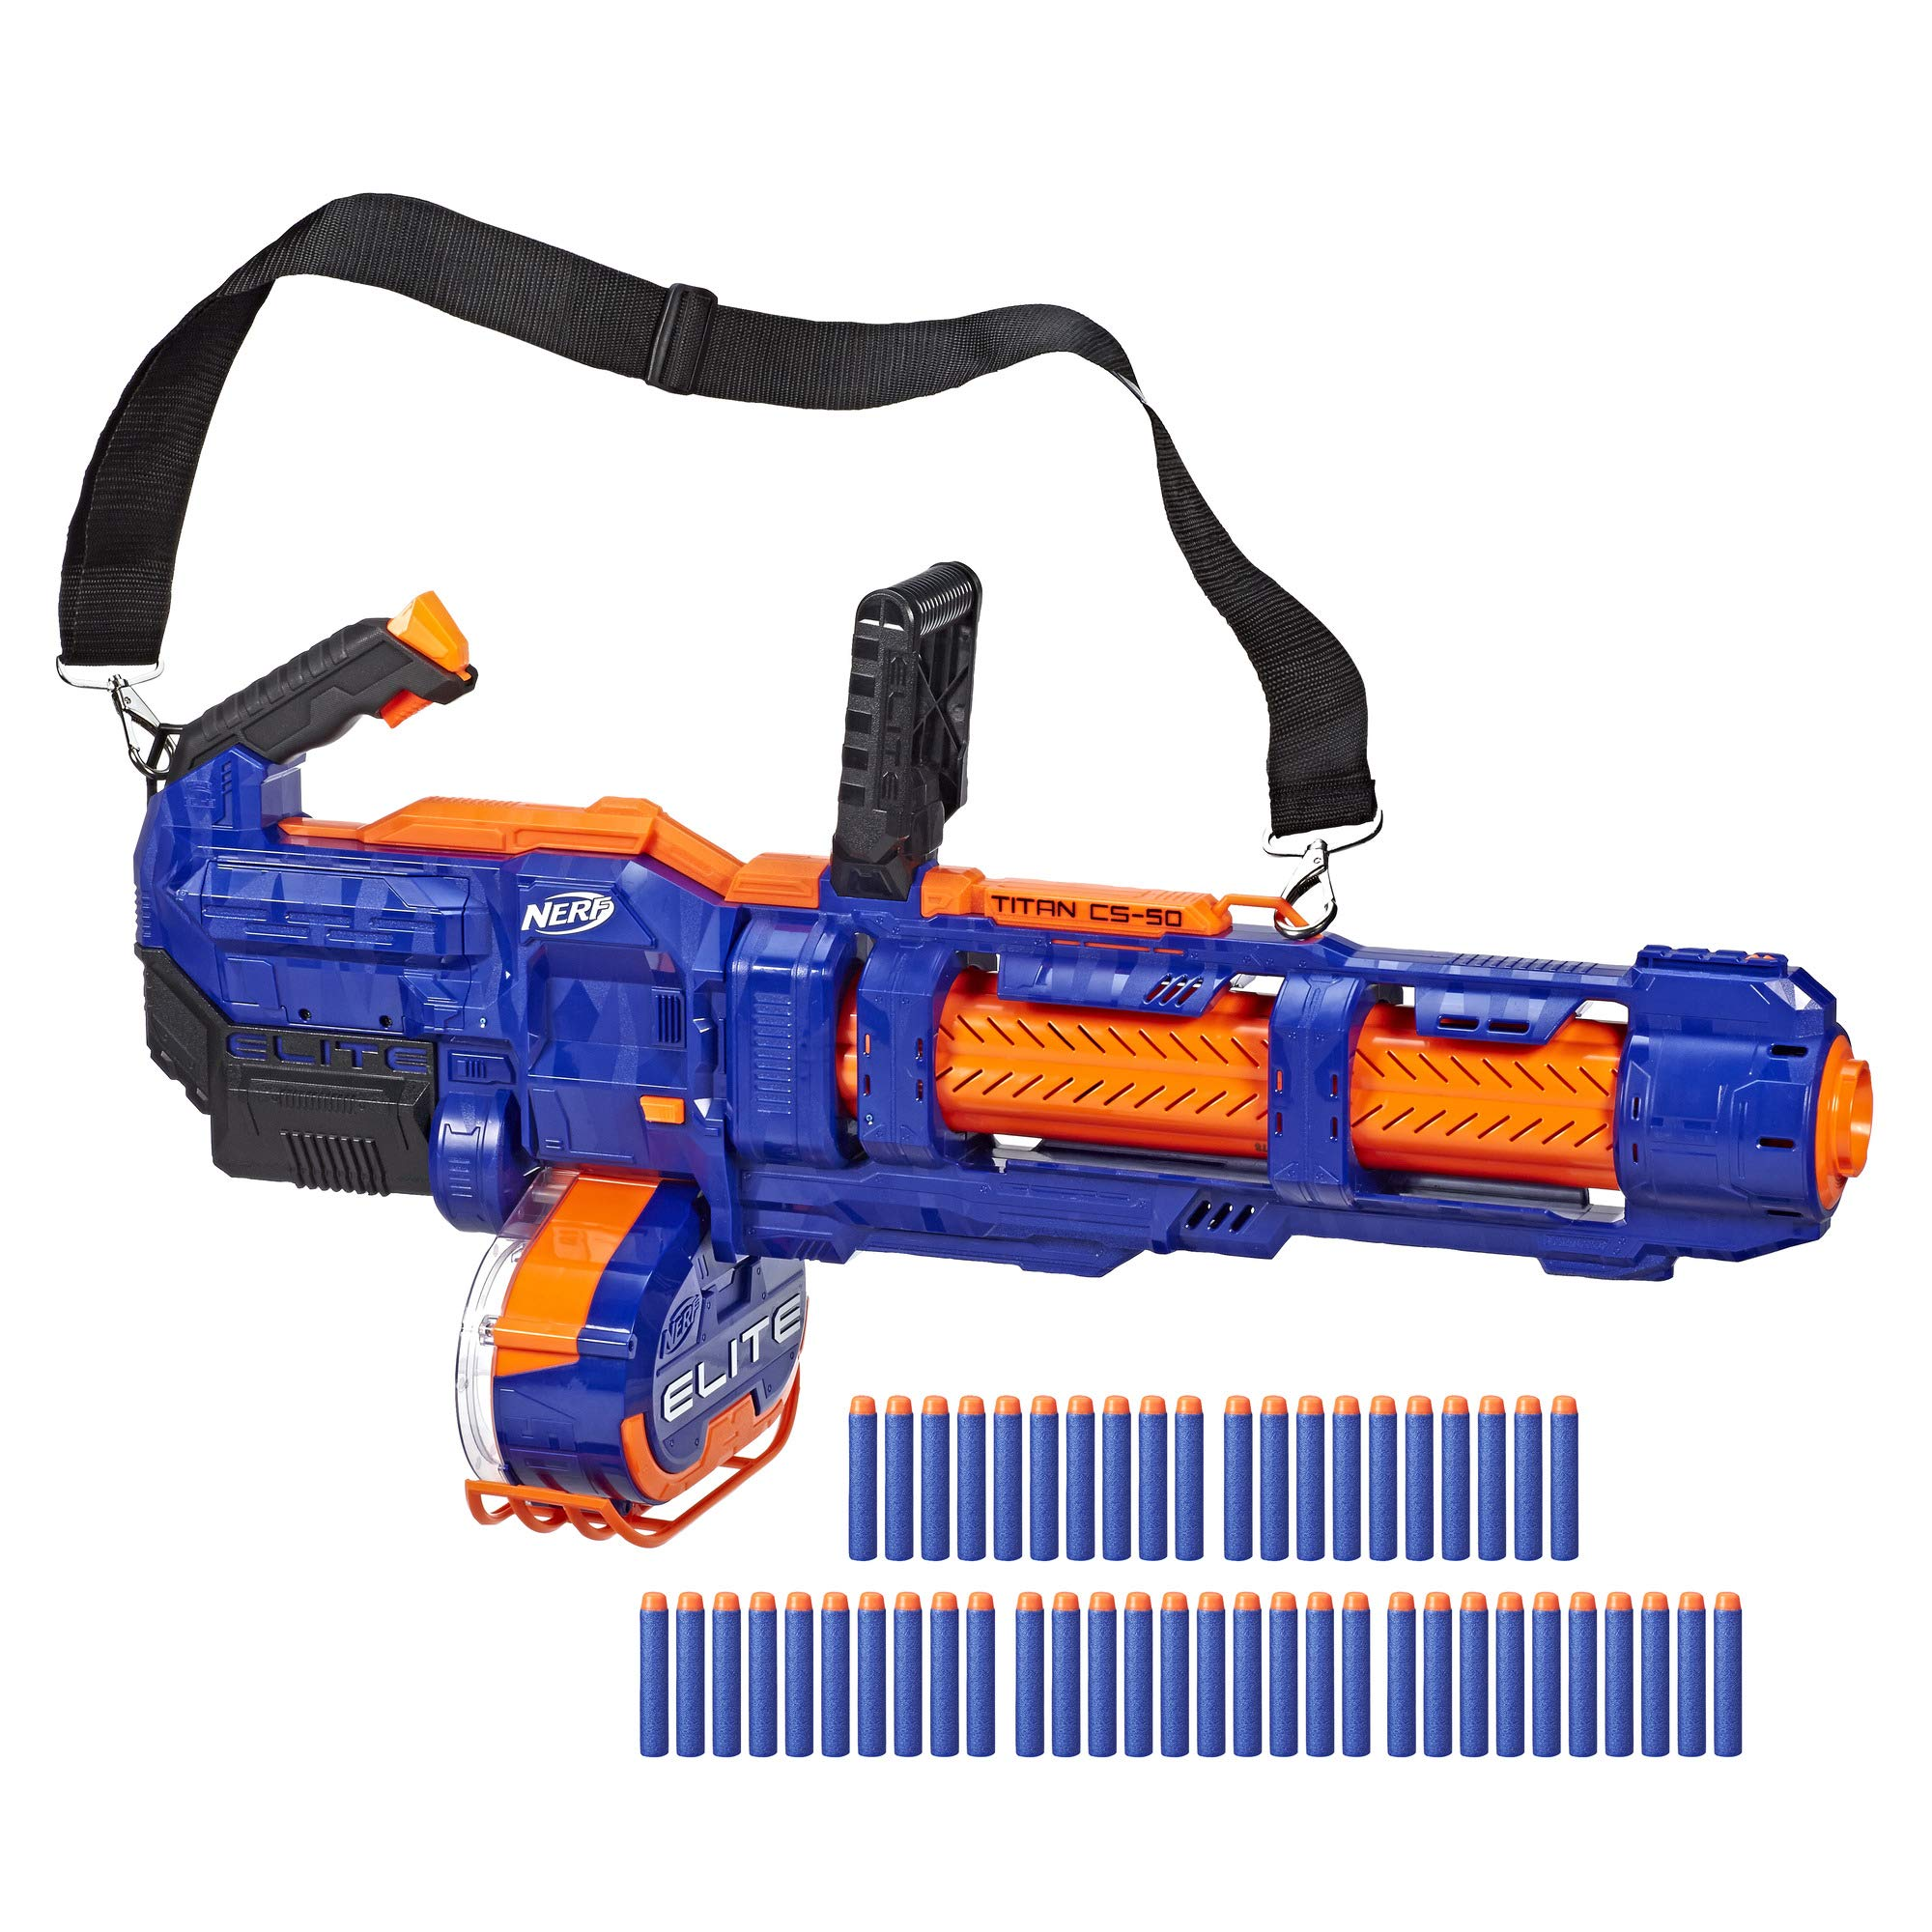 NERF Elite Titan CS-50 Toy Blaster -- Fully Motorized, 50-Dart Drum, 50 Official Elite Darts, Spinning Barrel -- for Kids, Teens, Adults by NERF